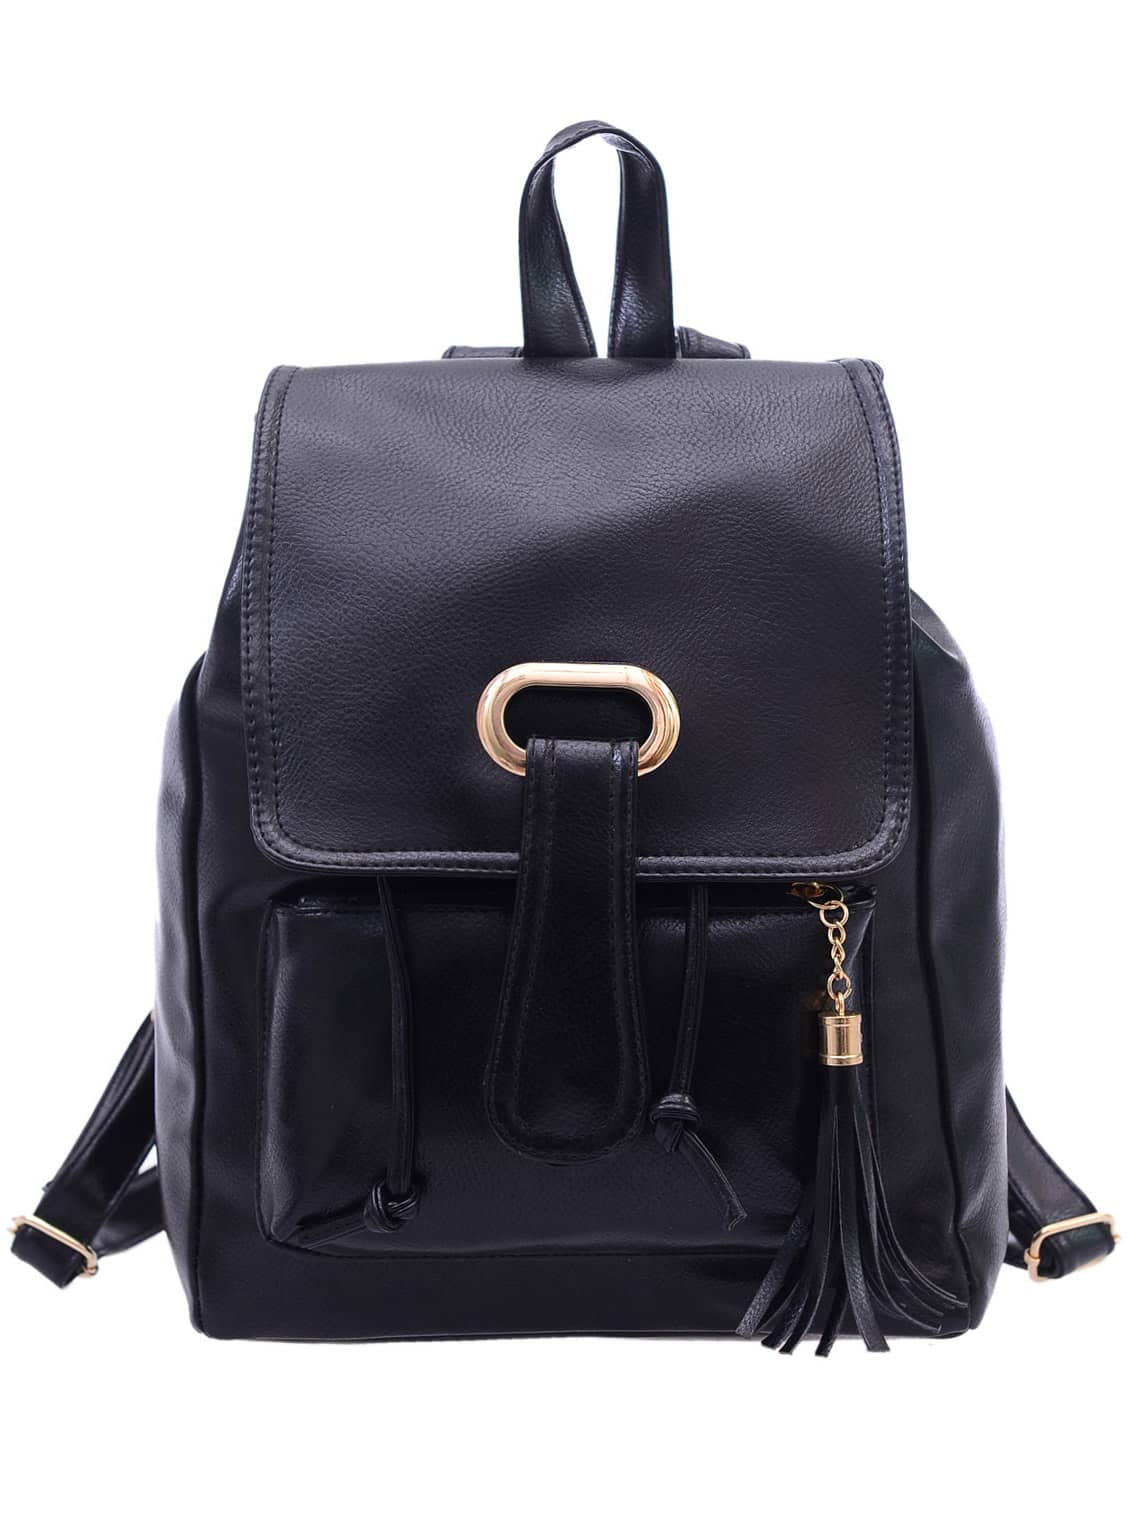 Faux Leather Tassel Embellished Flap Backpack – Black